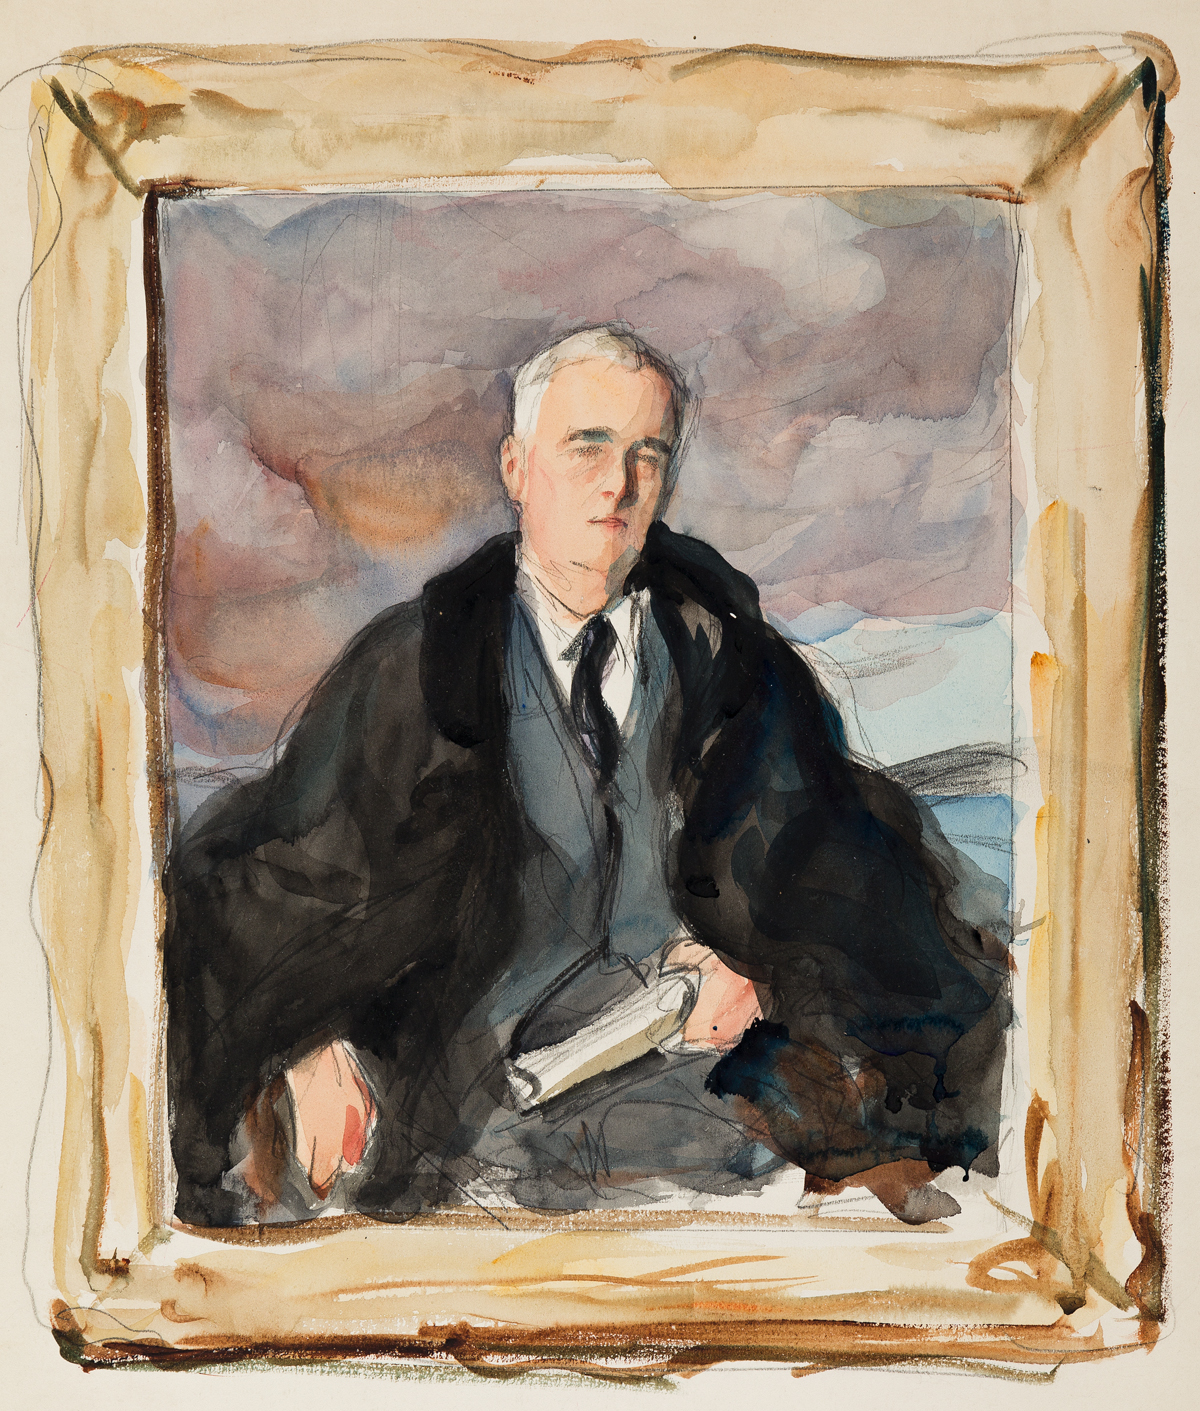 (PRESIDENTS--1945) Elizabeth Shoumatoff. Three watercolor studies for the famous Unfinished Portrait of Franklin D. Roosevelt.